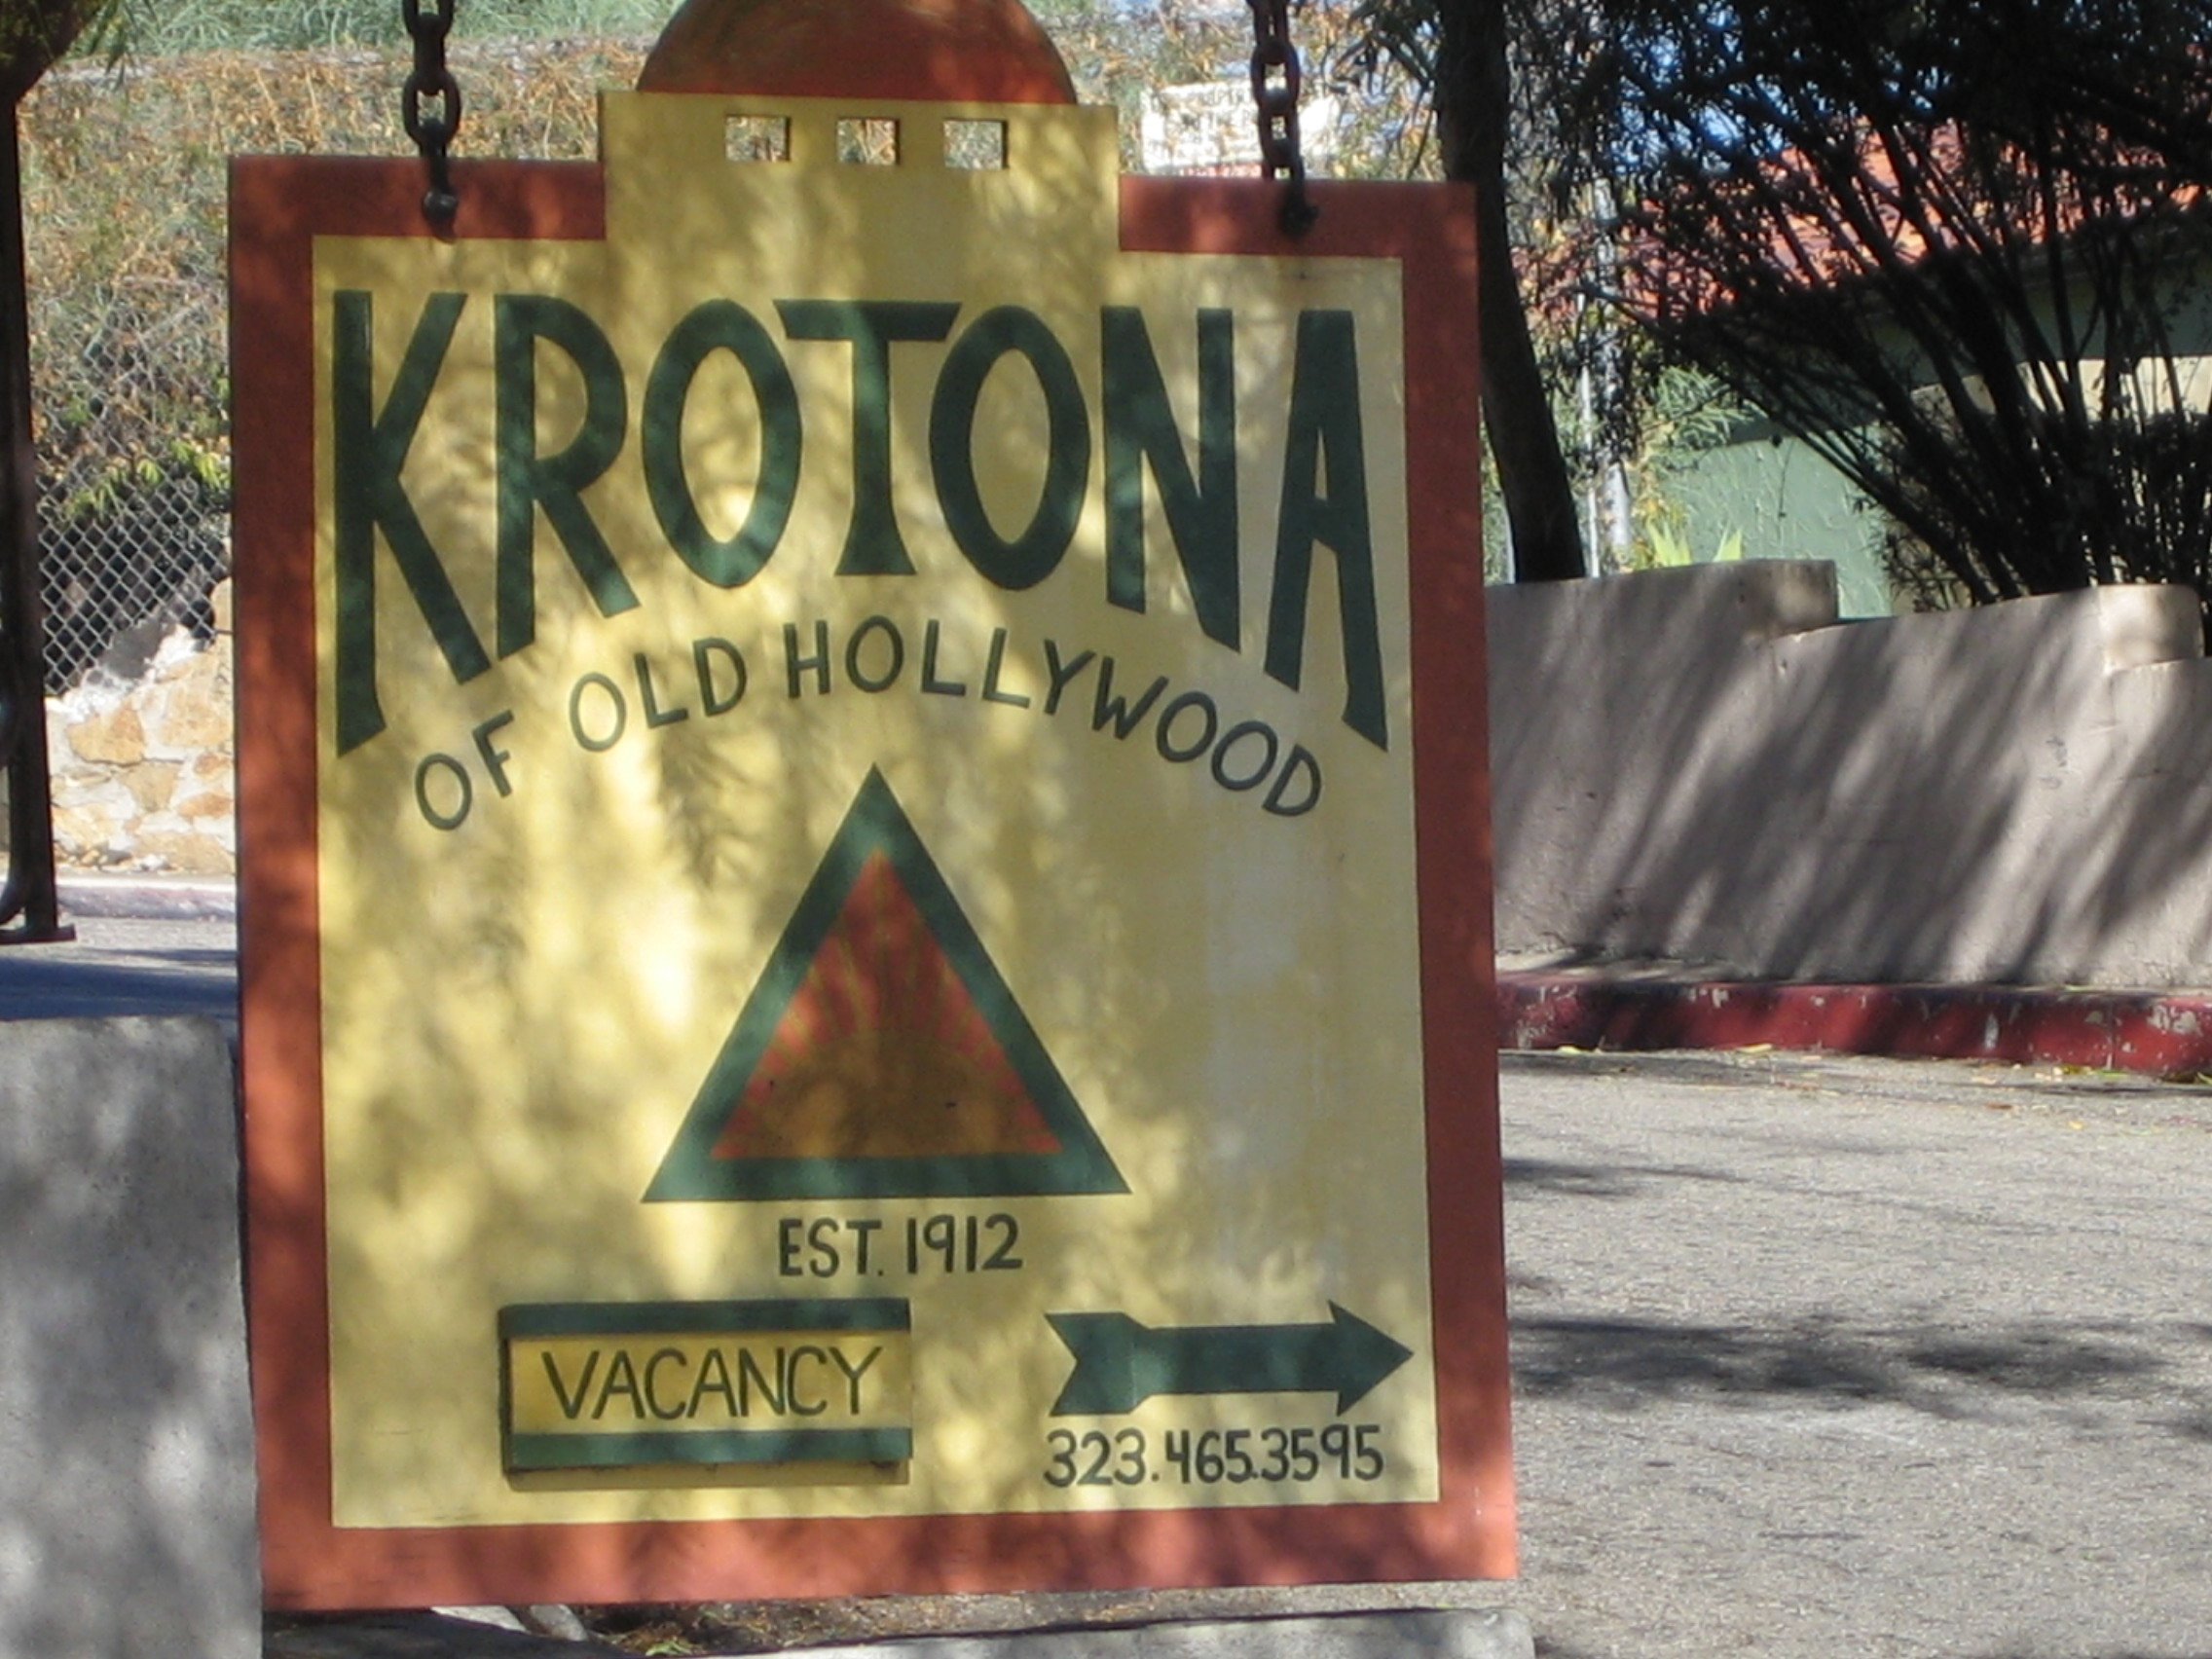 Krotona Apts. Sign with parking lot in background. Photo by Hope Anderson Productions